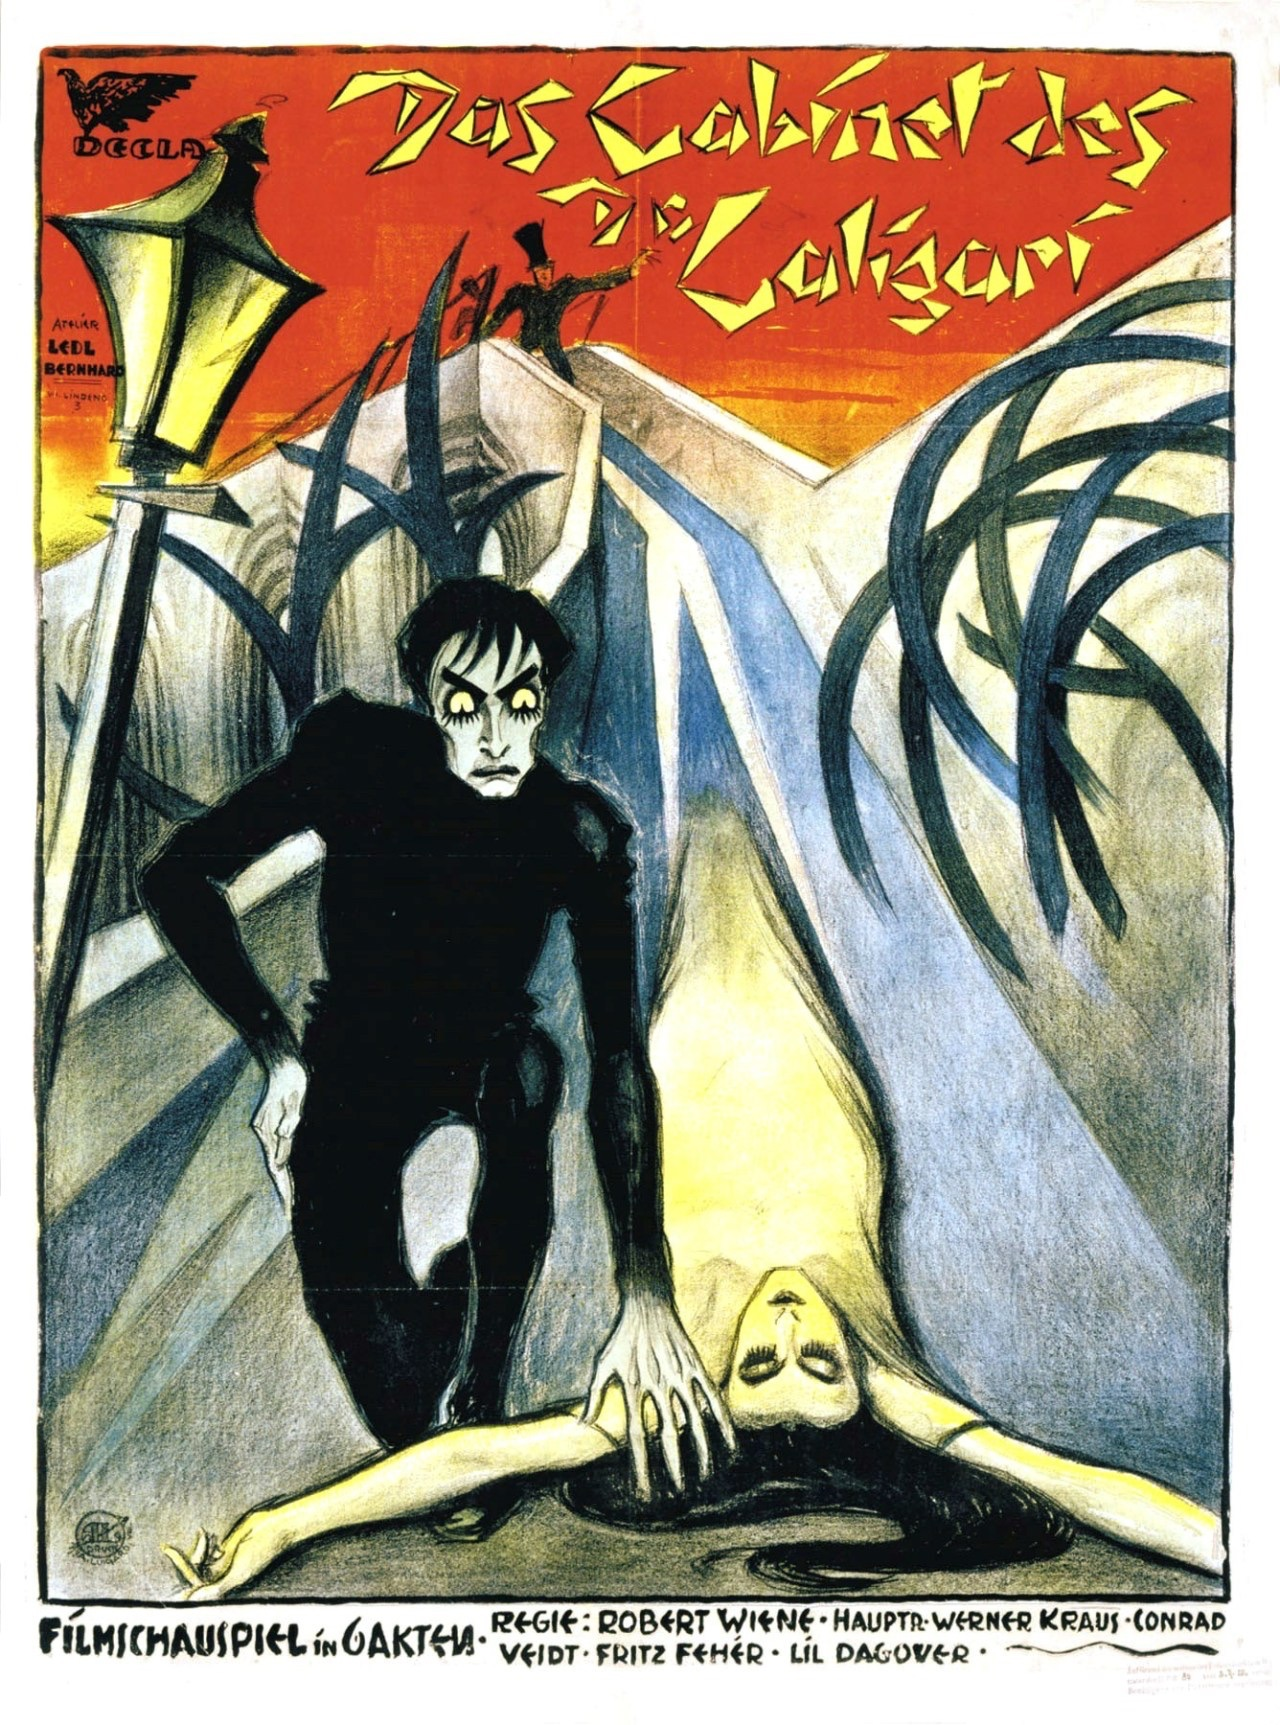 Stay healthy while watching movies at home. 'The Cabinet of Dr. Caligari,' a classic 1920 silent shocker, is among the good ones FREE online. (image: original movie poster)